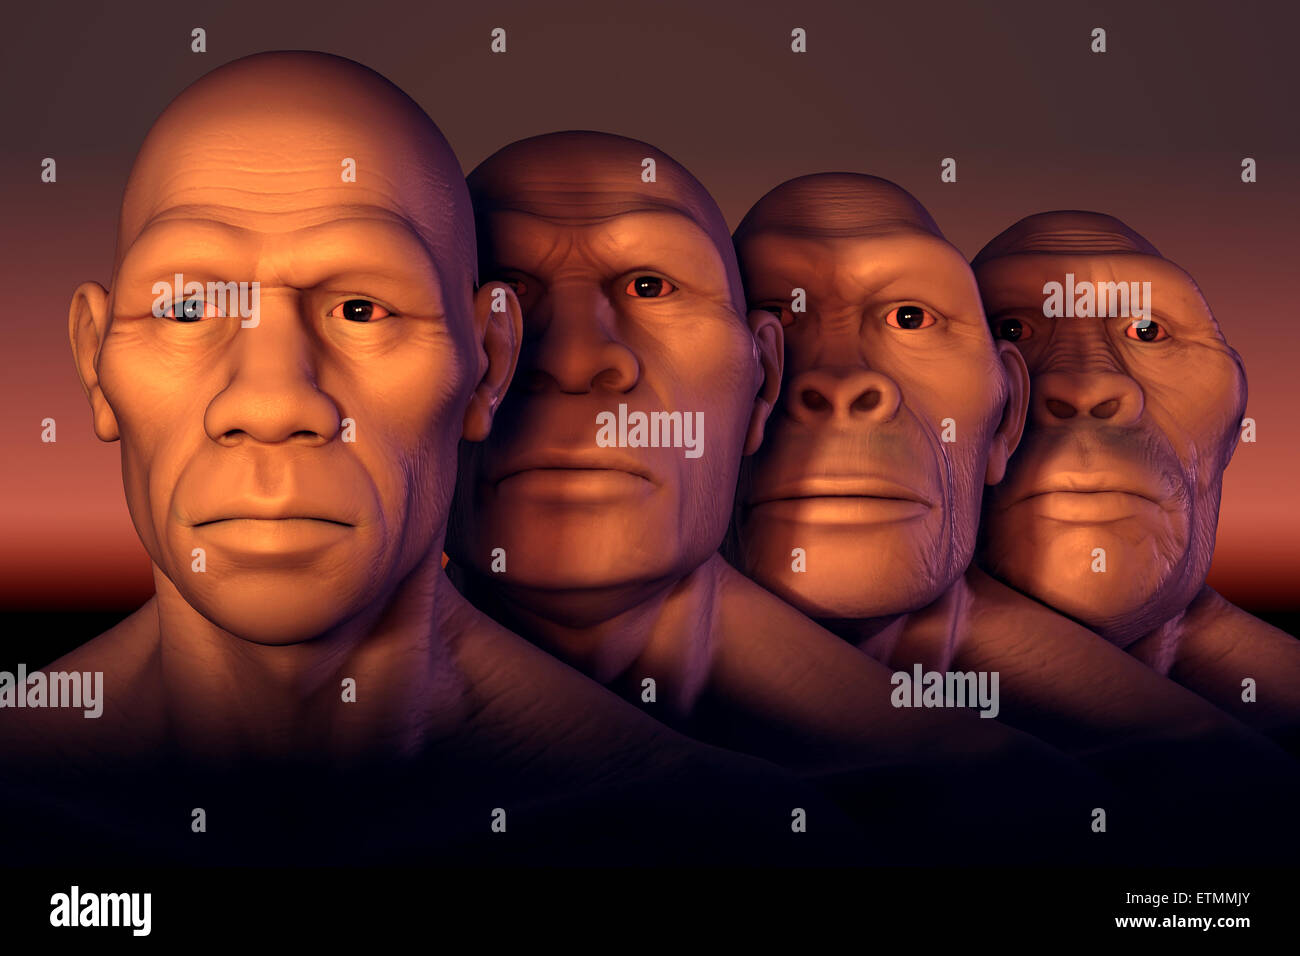 Conceptual Image Showing Four Stages Of Human Evolution